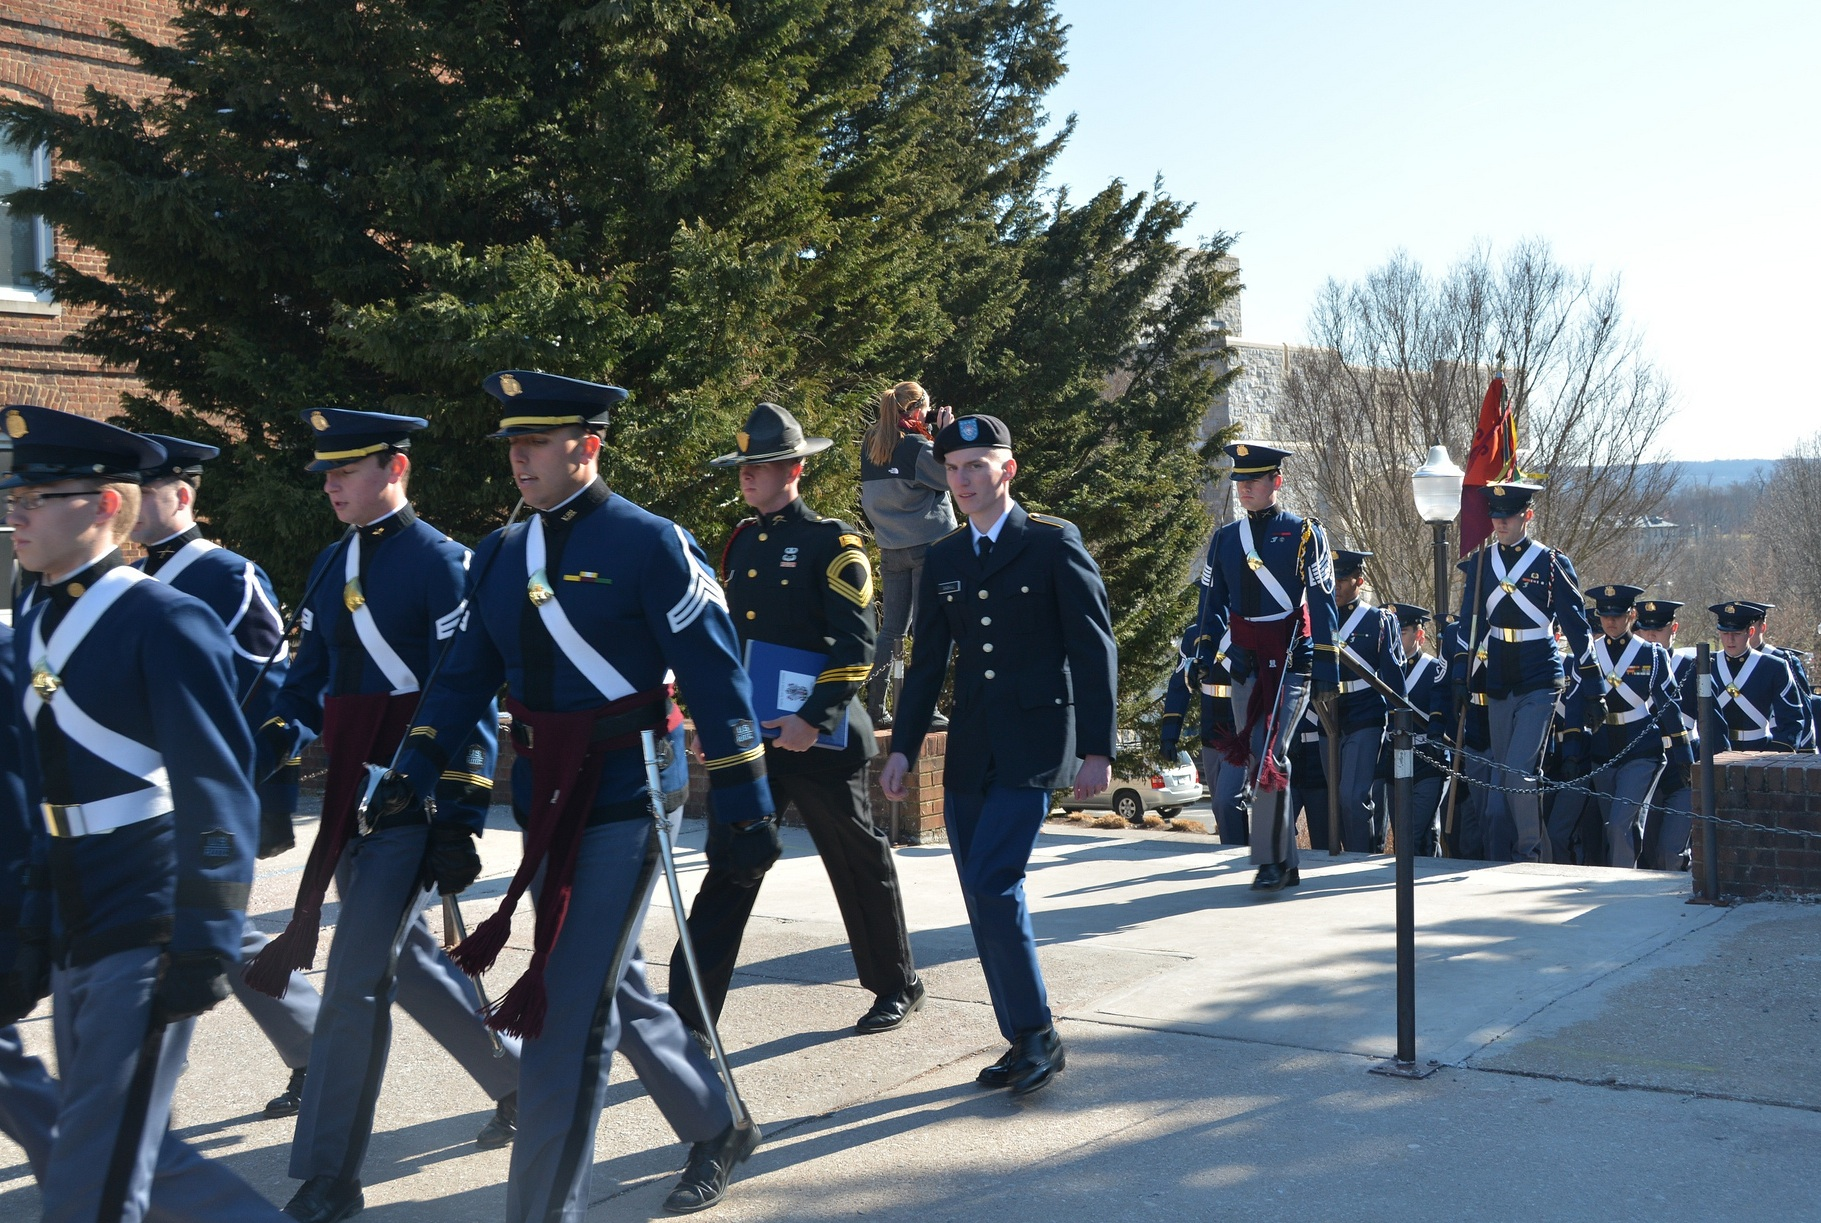 Visiting cadets join members of the Virginia Tech Corps of Cadets as they march to the annual leadership conference formal retreat ceremony on the Upper Quad.